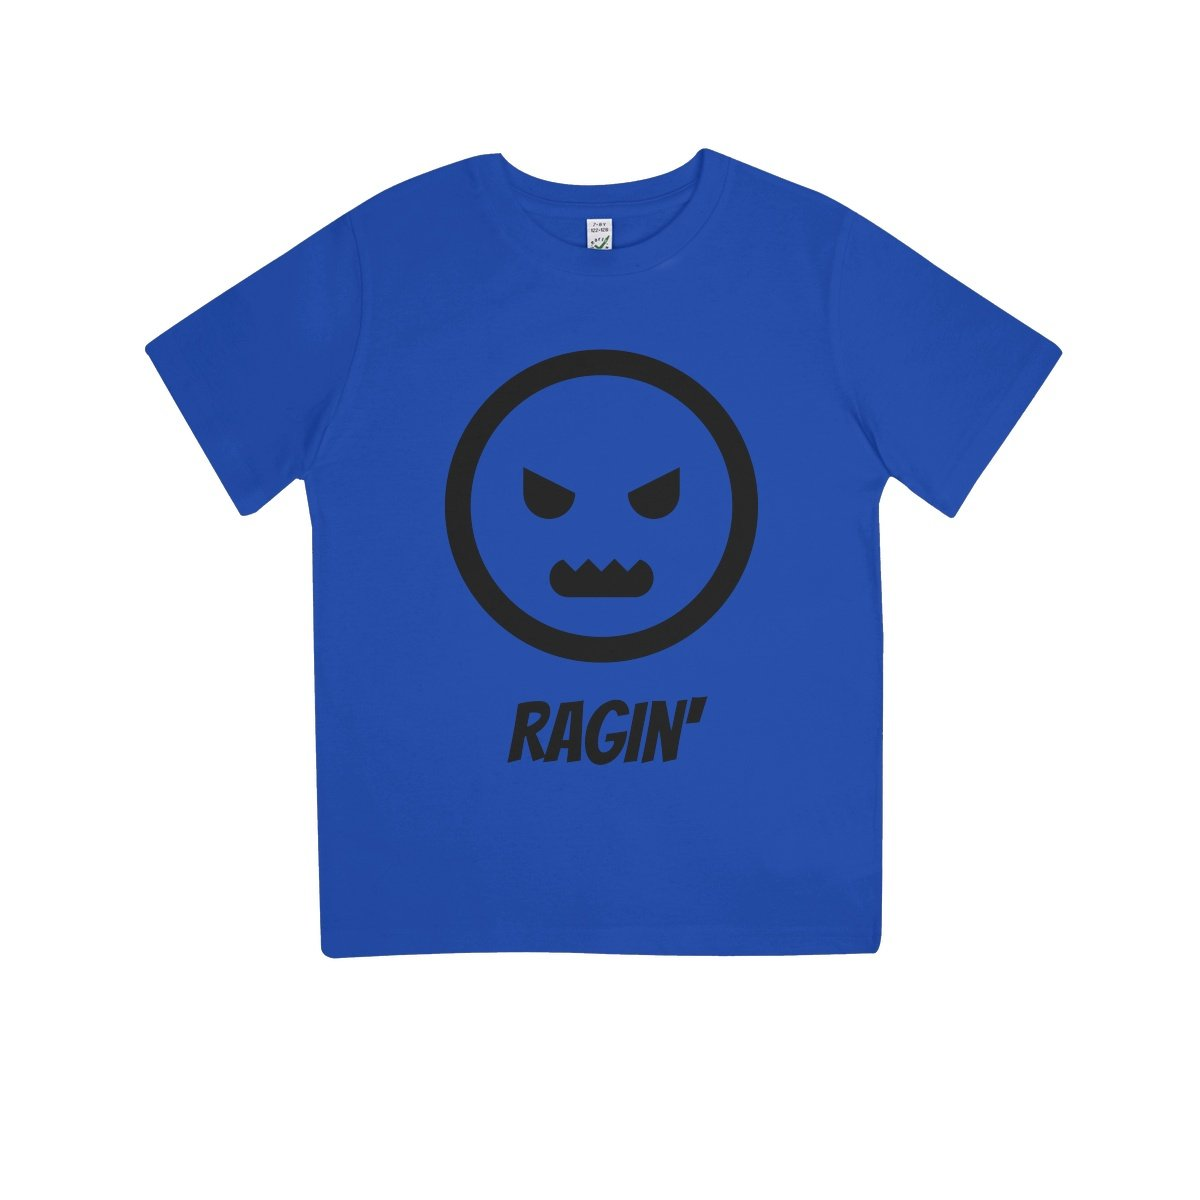 Ragin (Black) Kids 100% Organic T-Shirt by stray funk design